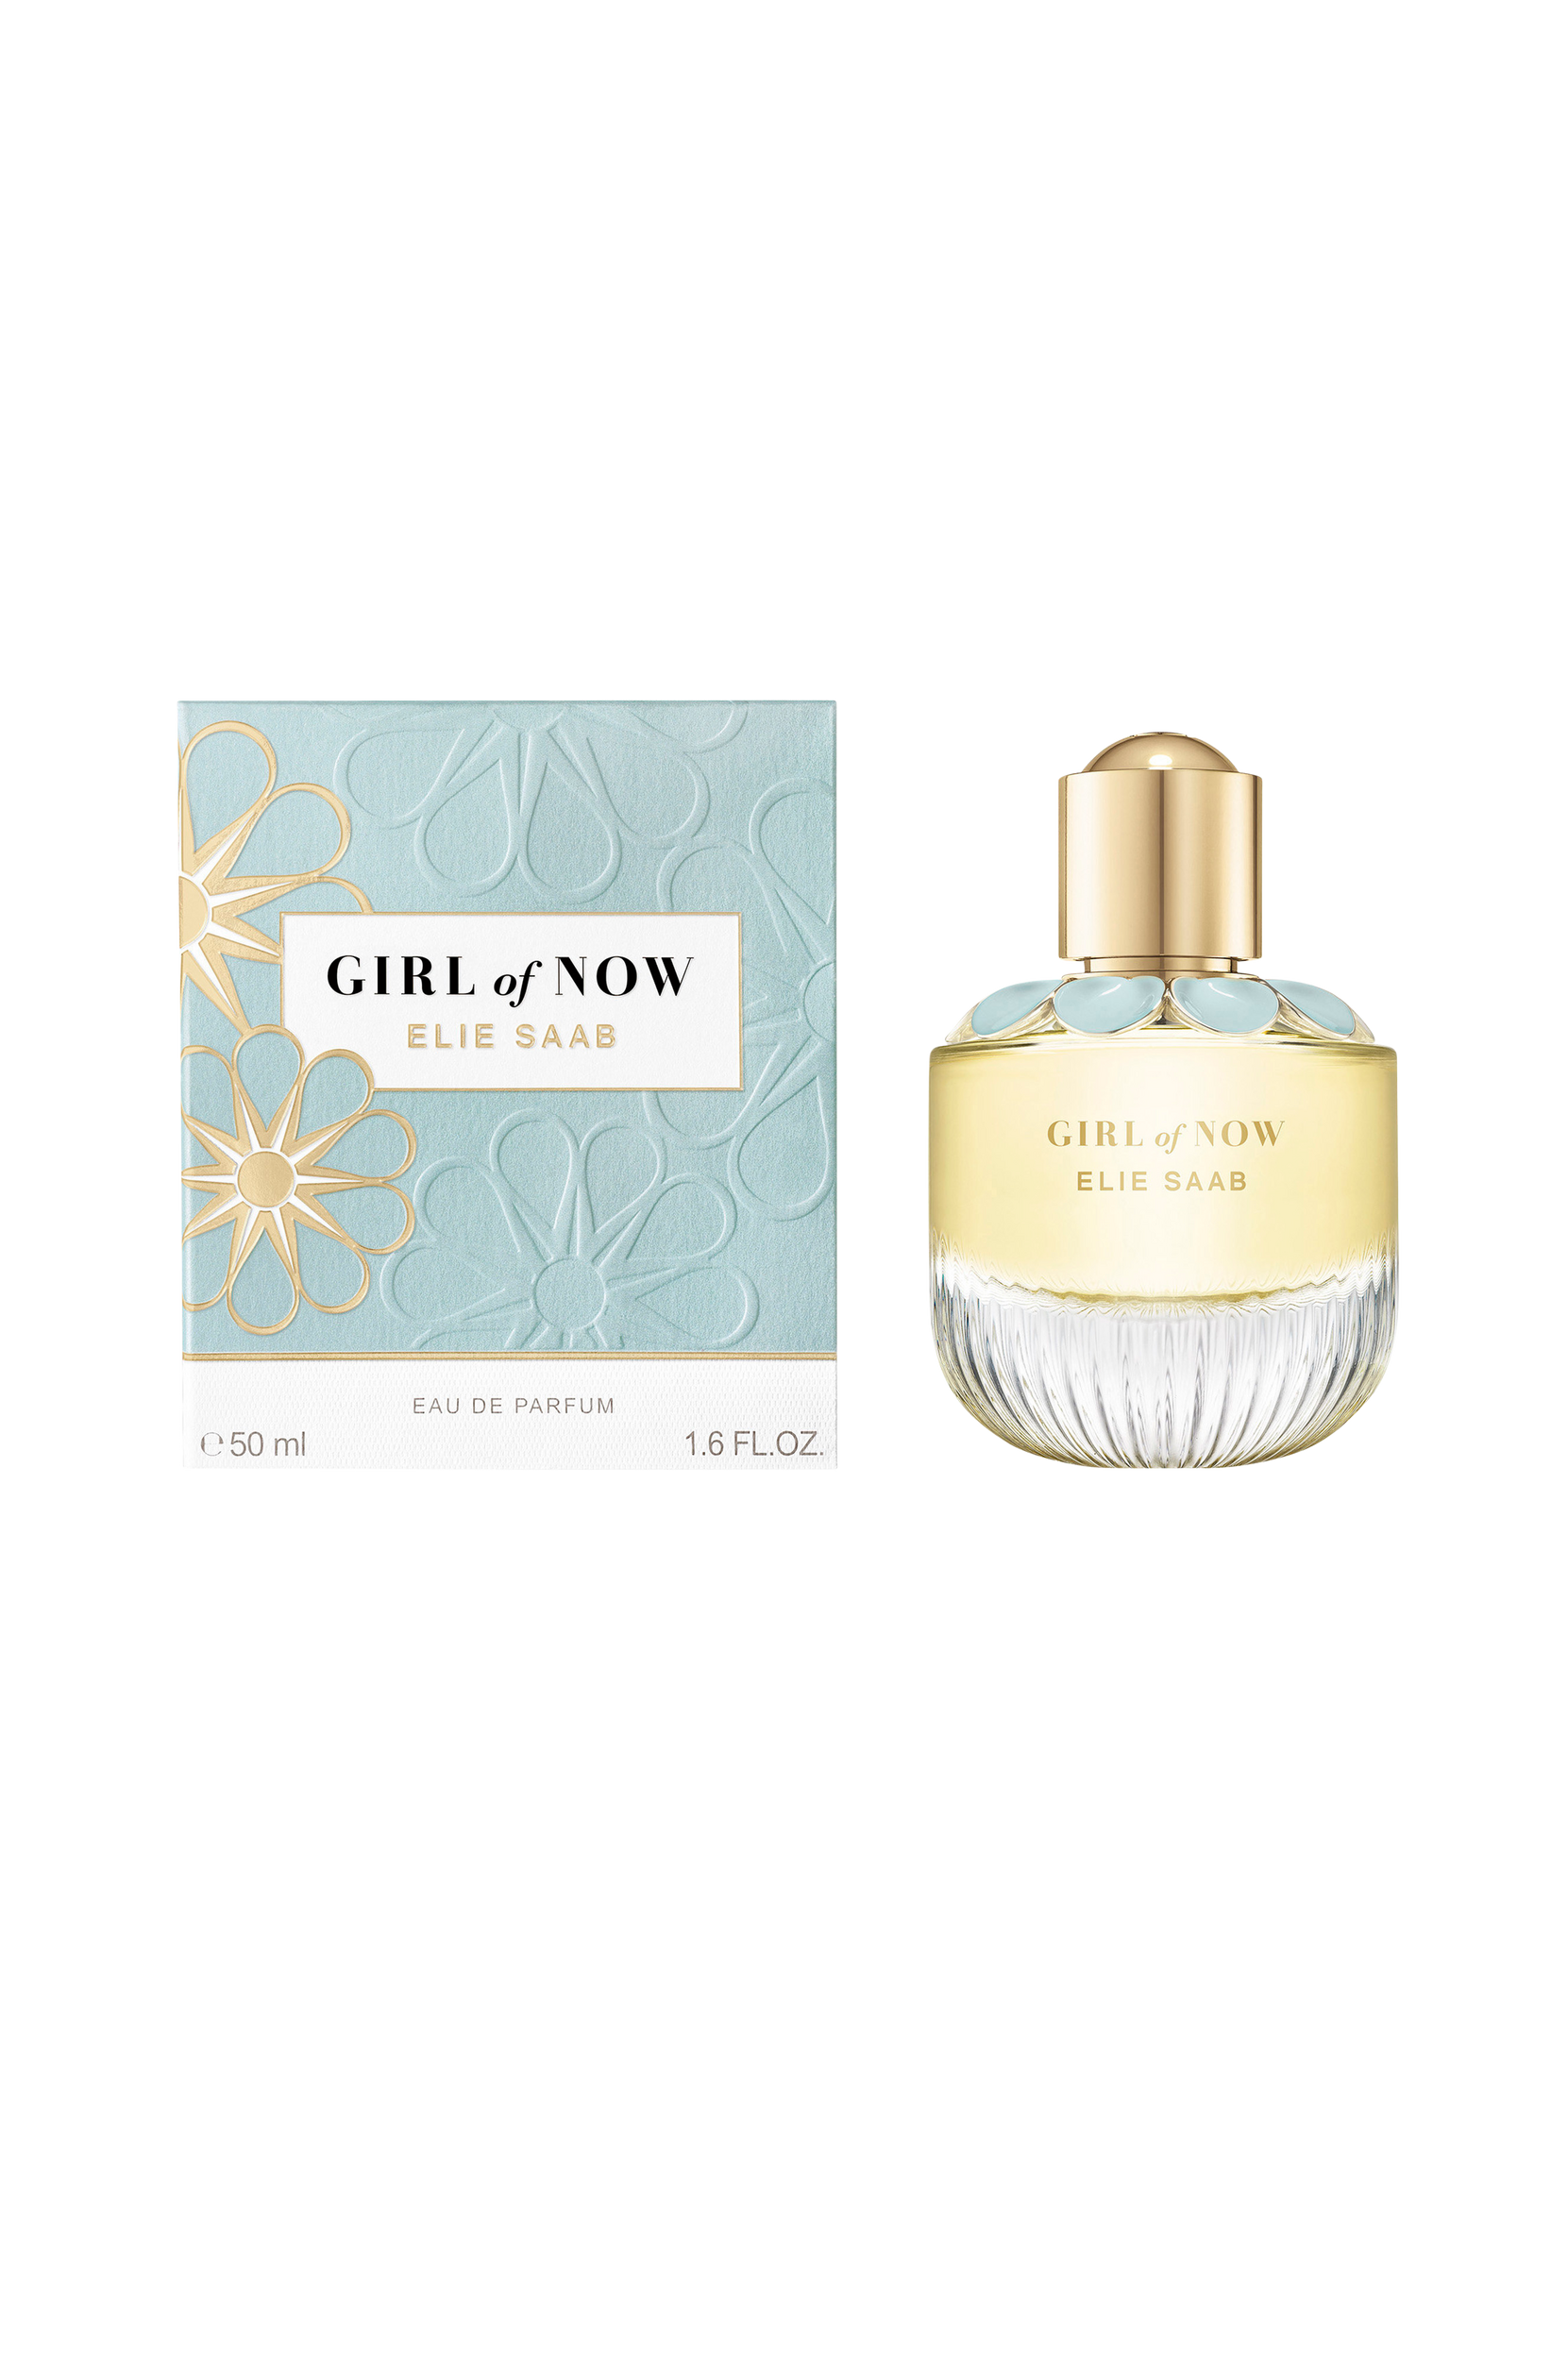 Girl of Now Edp 50 ml